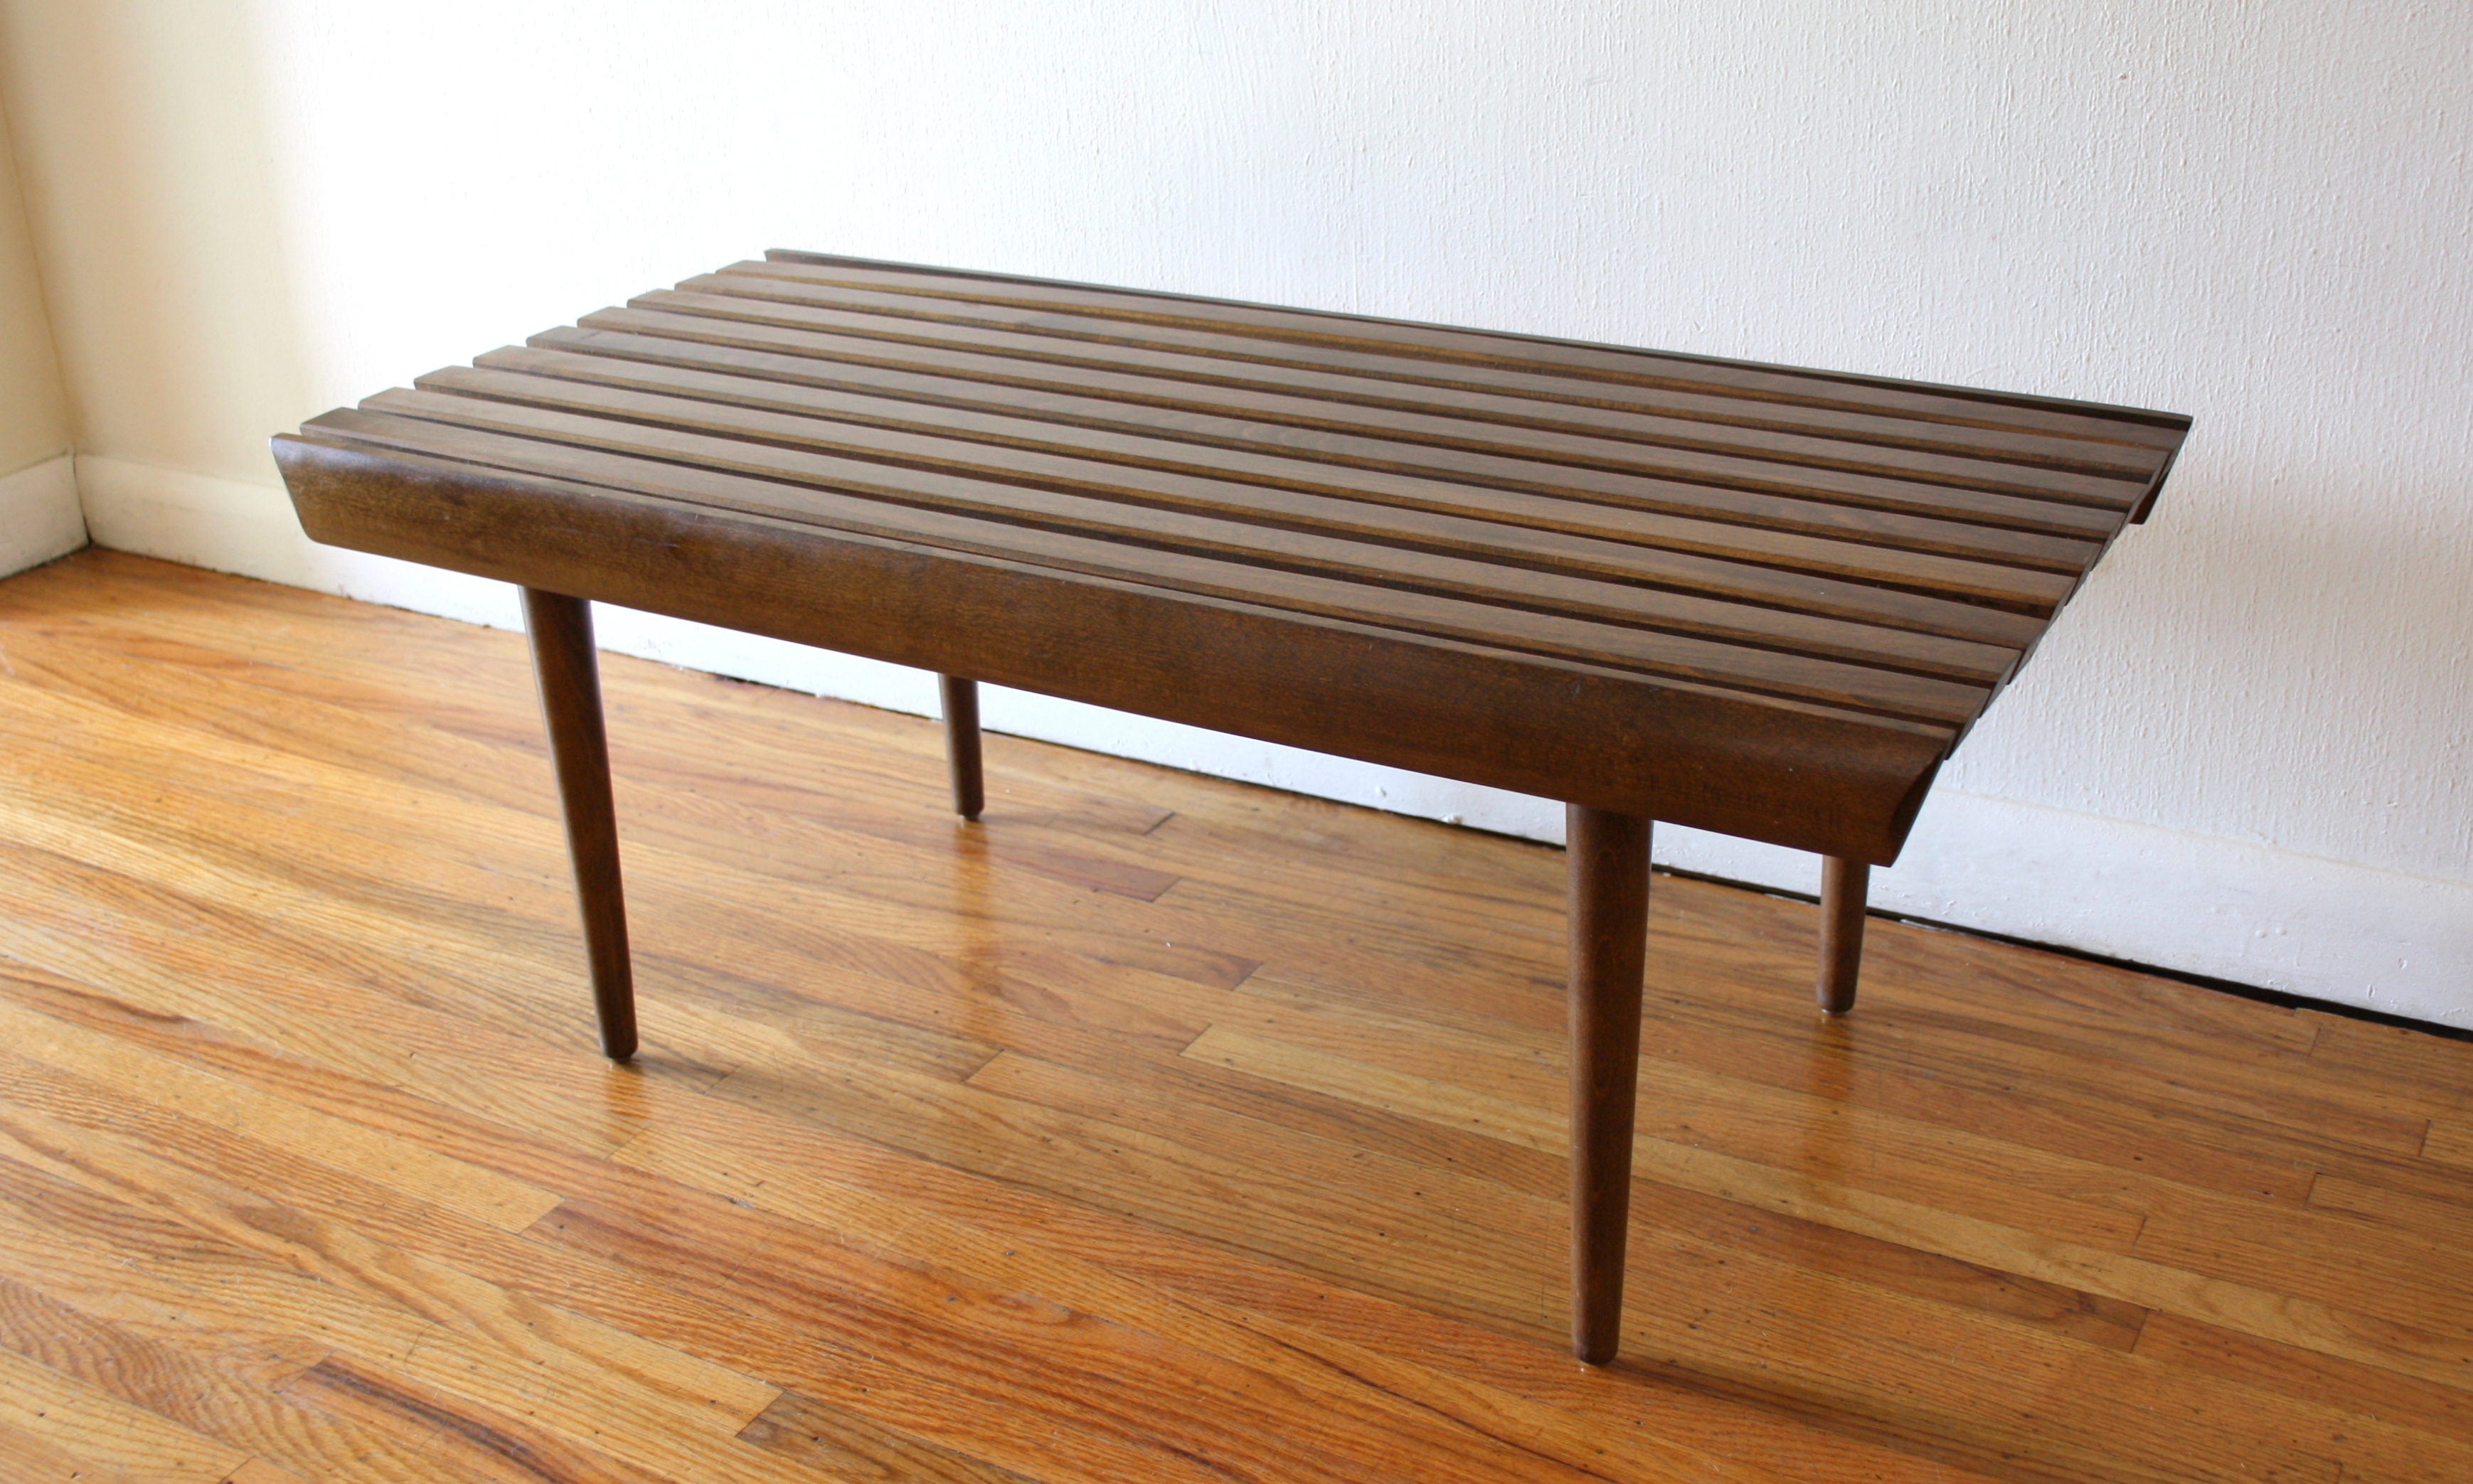 Mcm 36 slatted bench with finished curve 3